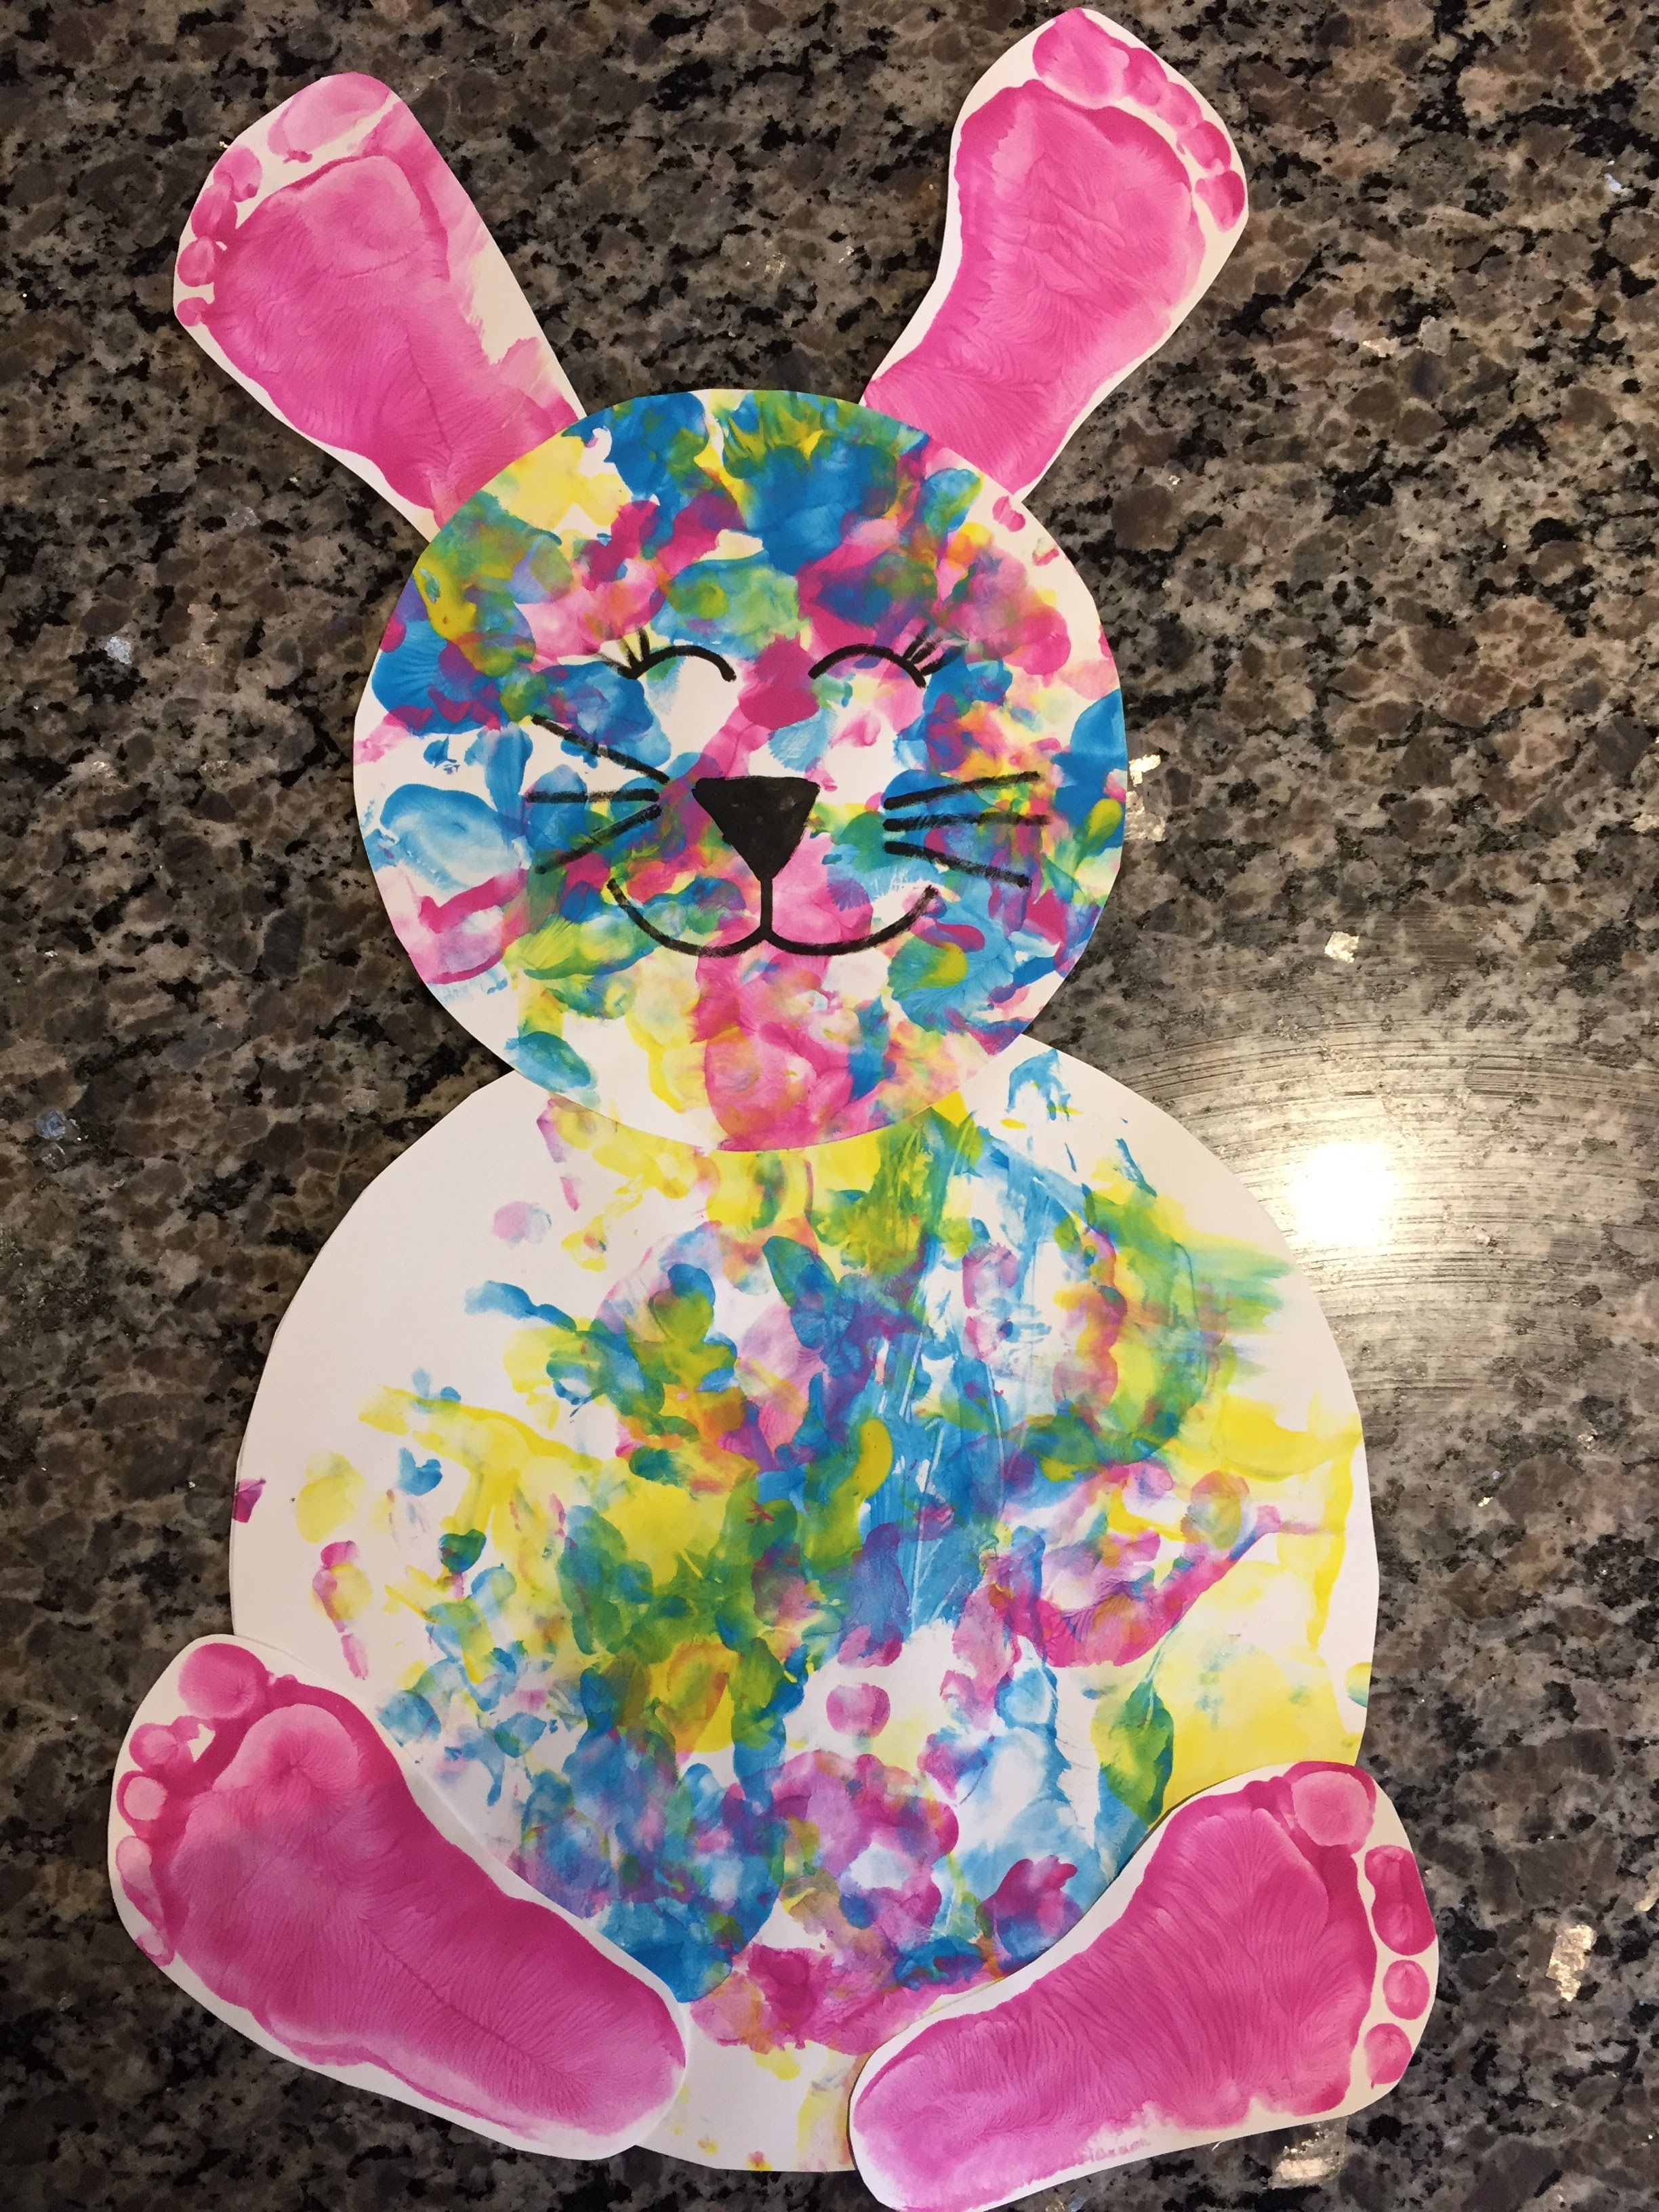 Pin On Baby And Toddler Crafts